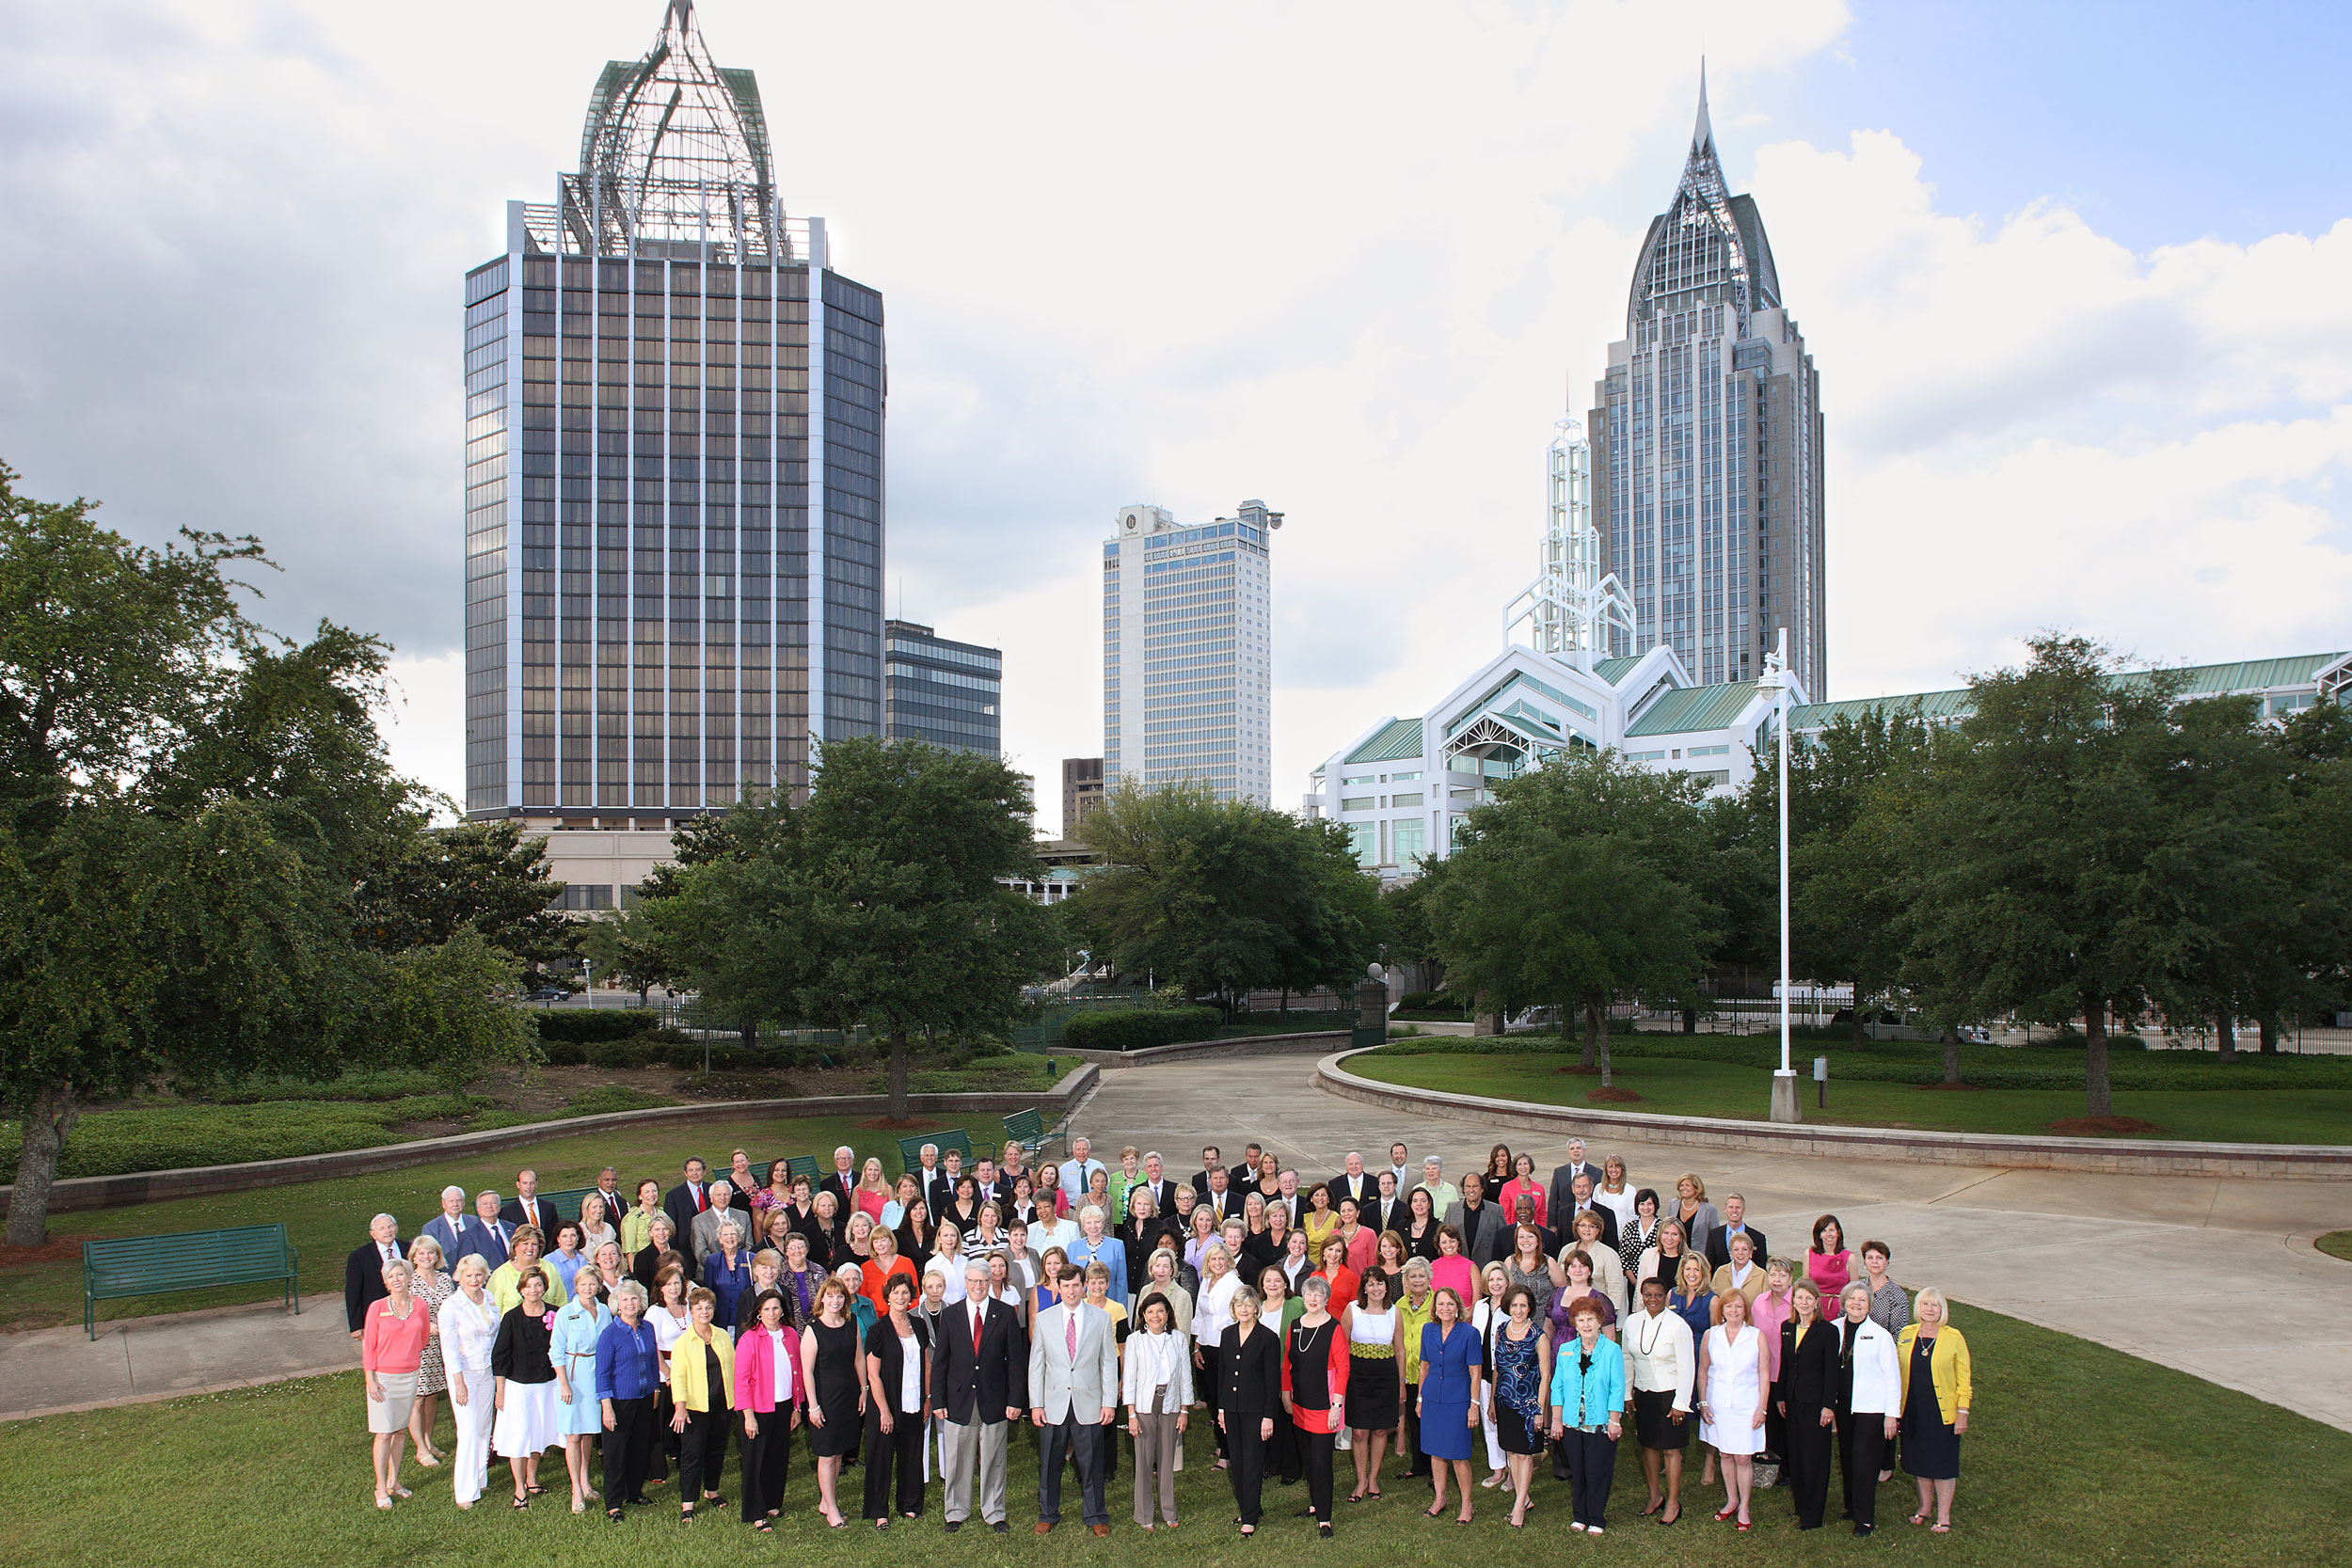 Photo Of Real Estate Agents From Homes For Sale Mobile, AL Company - Roberts Brothers, Inc.